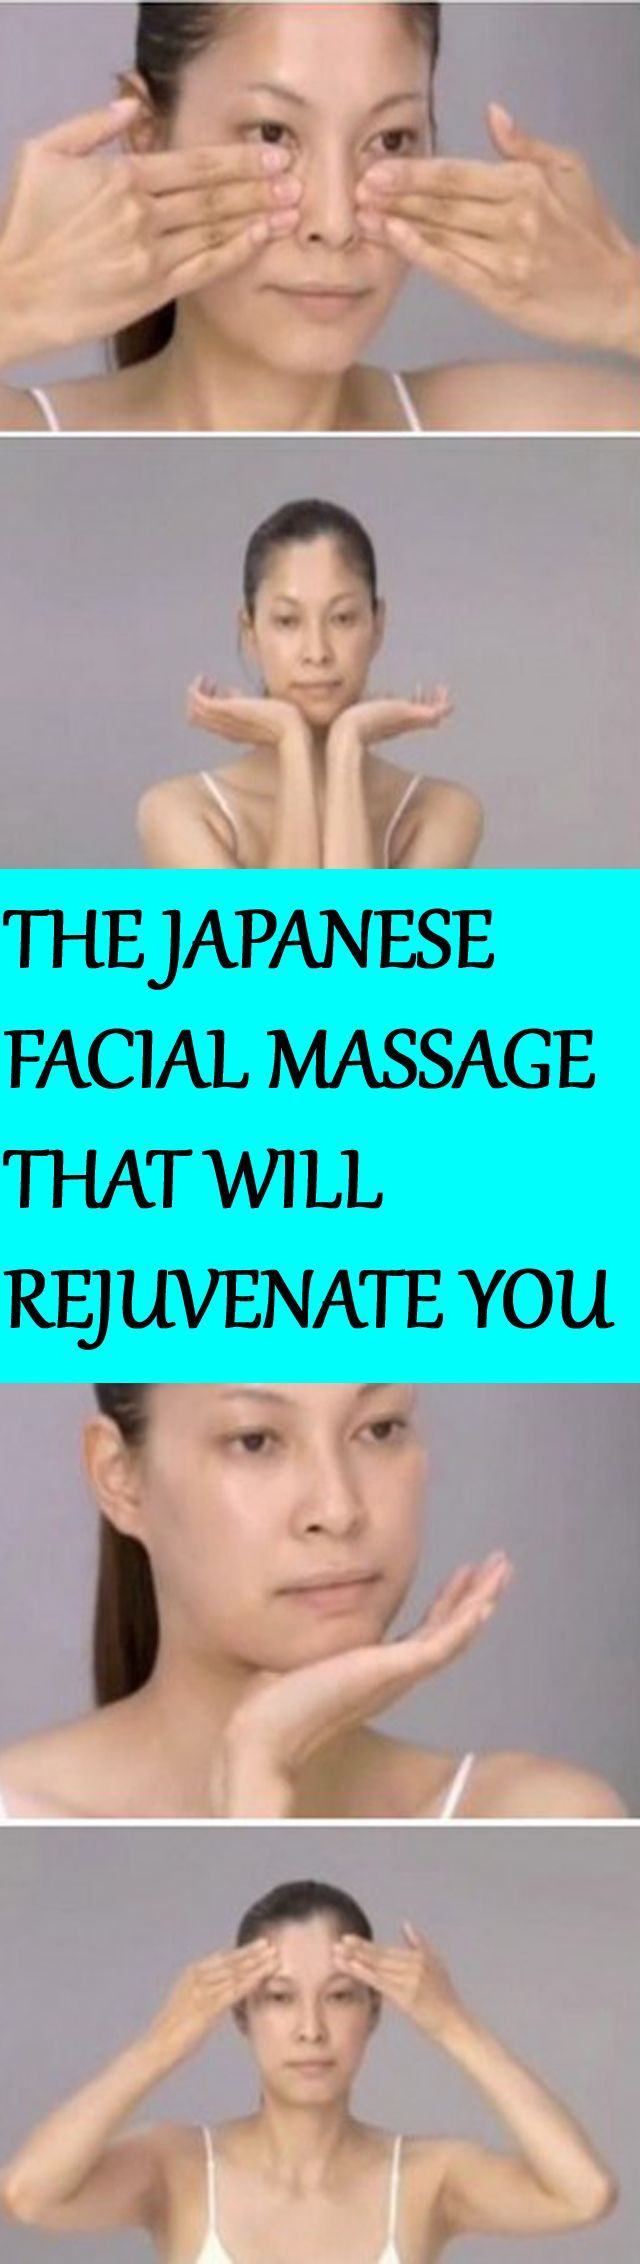 THE MIRACULOUS JAPANESE FACIAL MASSAGE THAT WILL MAKE YOU LOOK TEN YEARS YOUNGER